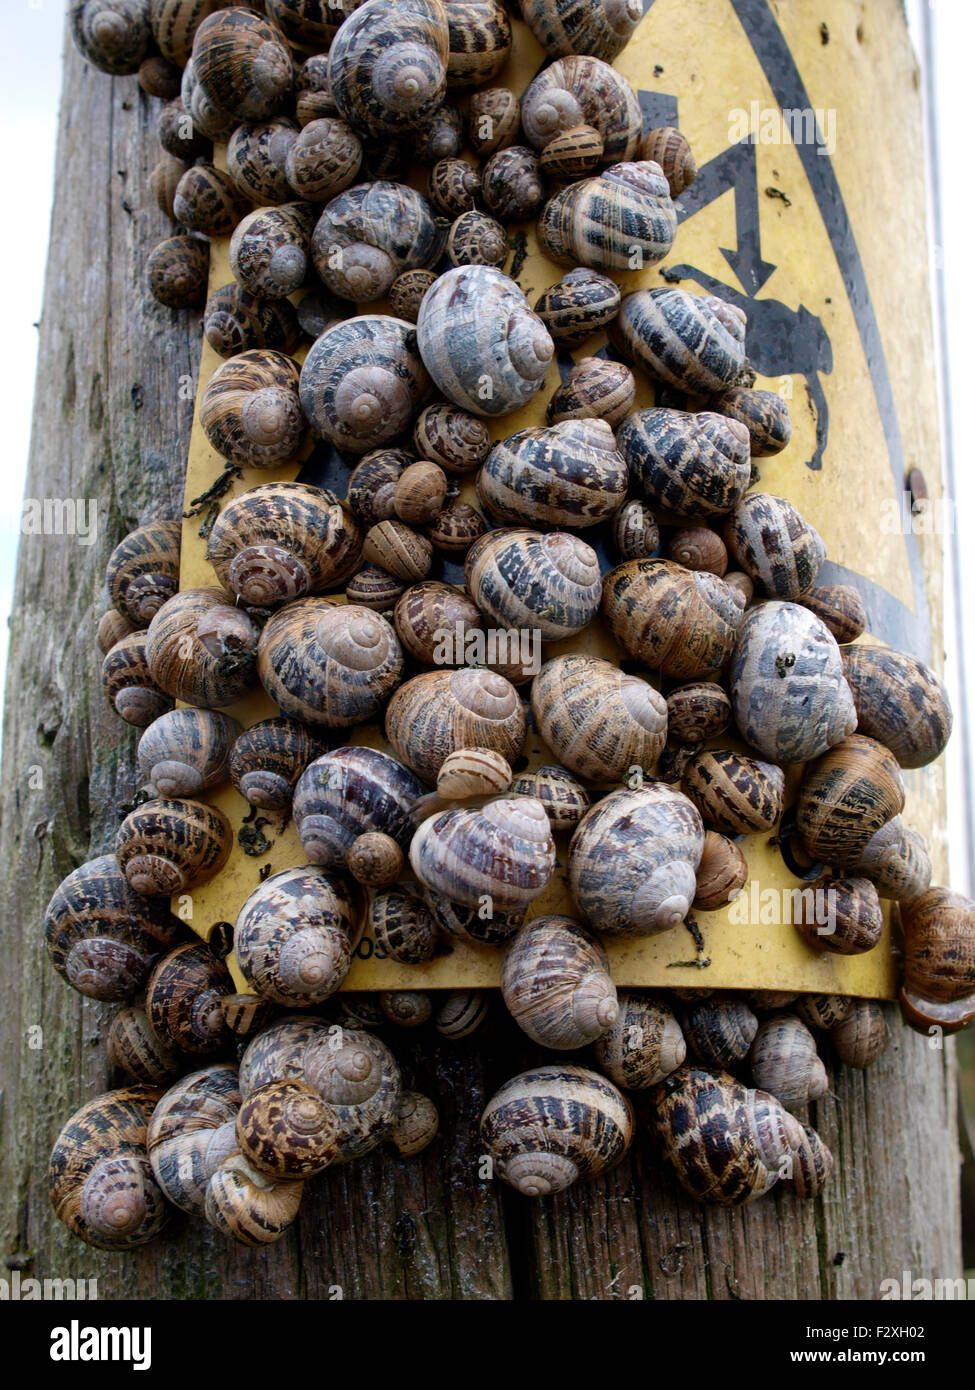 Lots of snails on a telegraph pole, Cornwall, UK - Stock Image